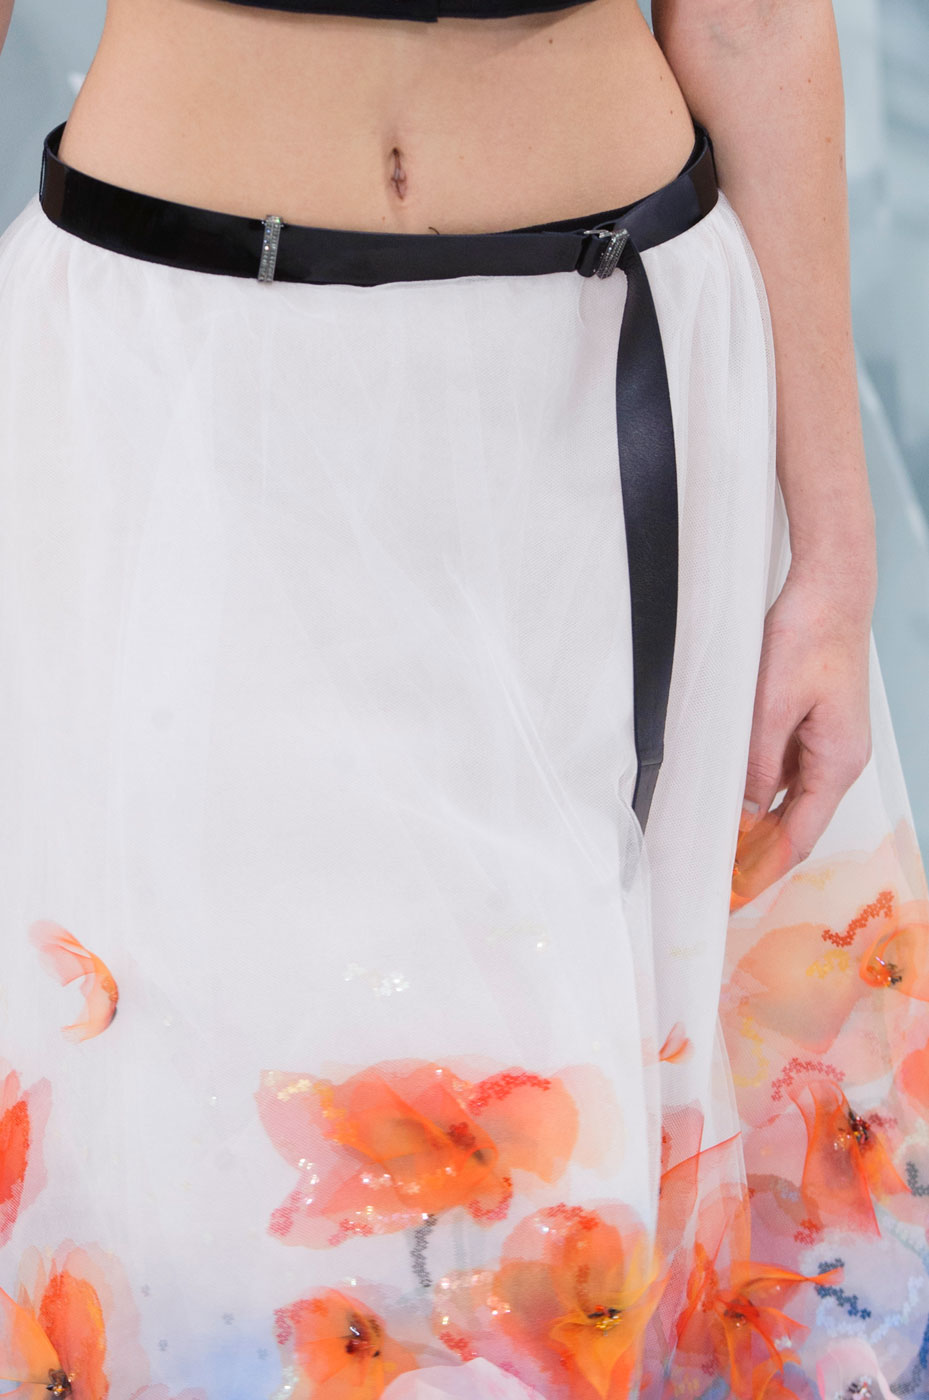 Chanel-fashion-runway-show-close-ups-haute-couture-paris-spring-summer-2015-the-impression-090